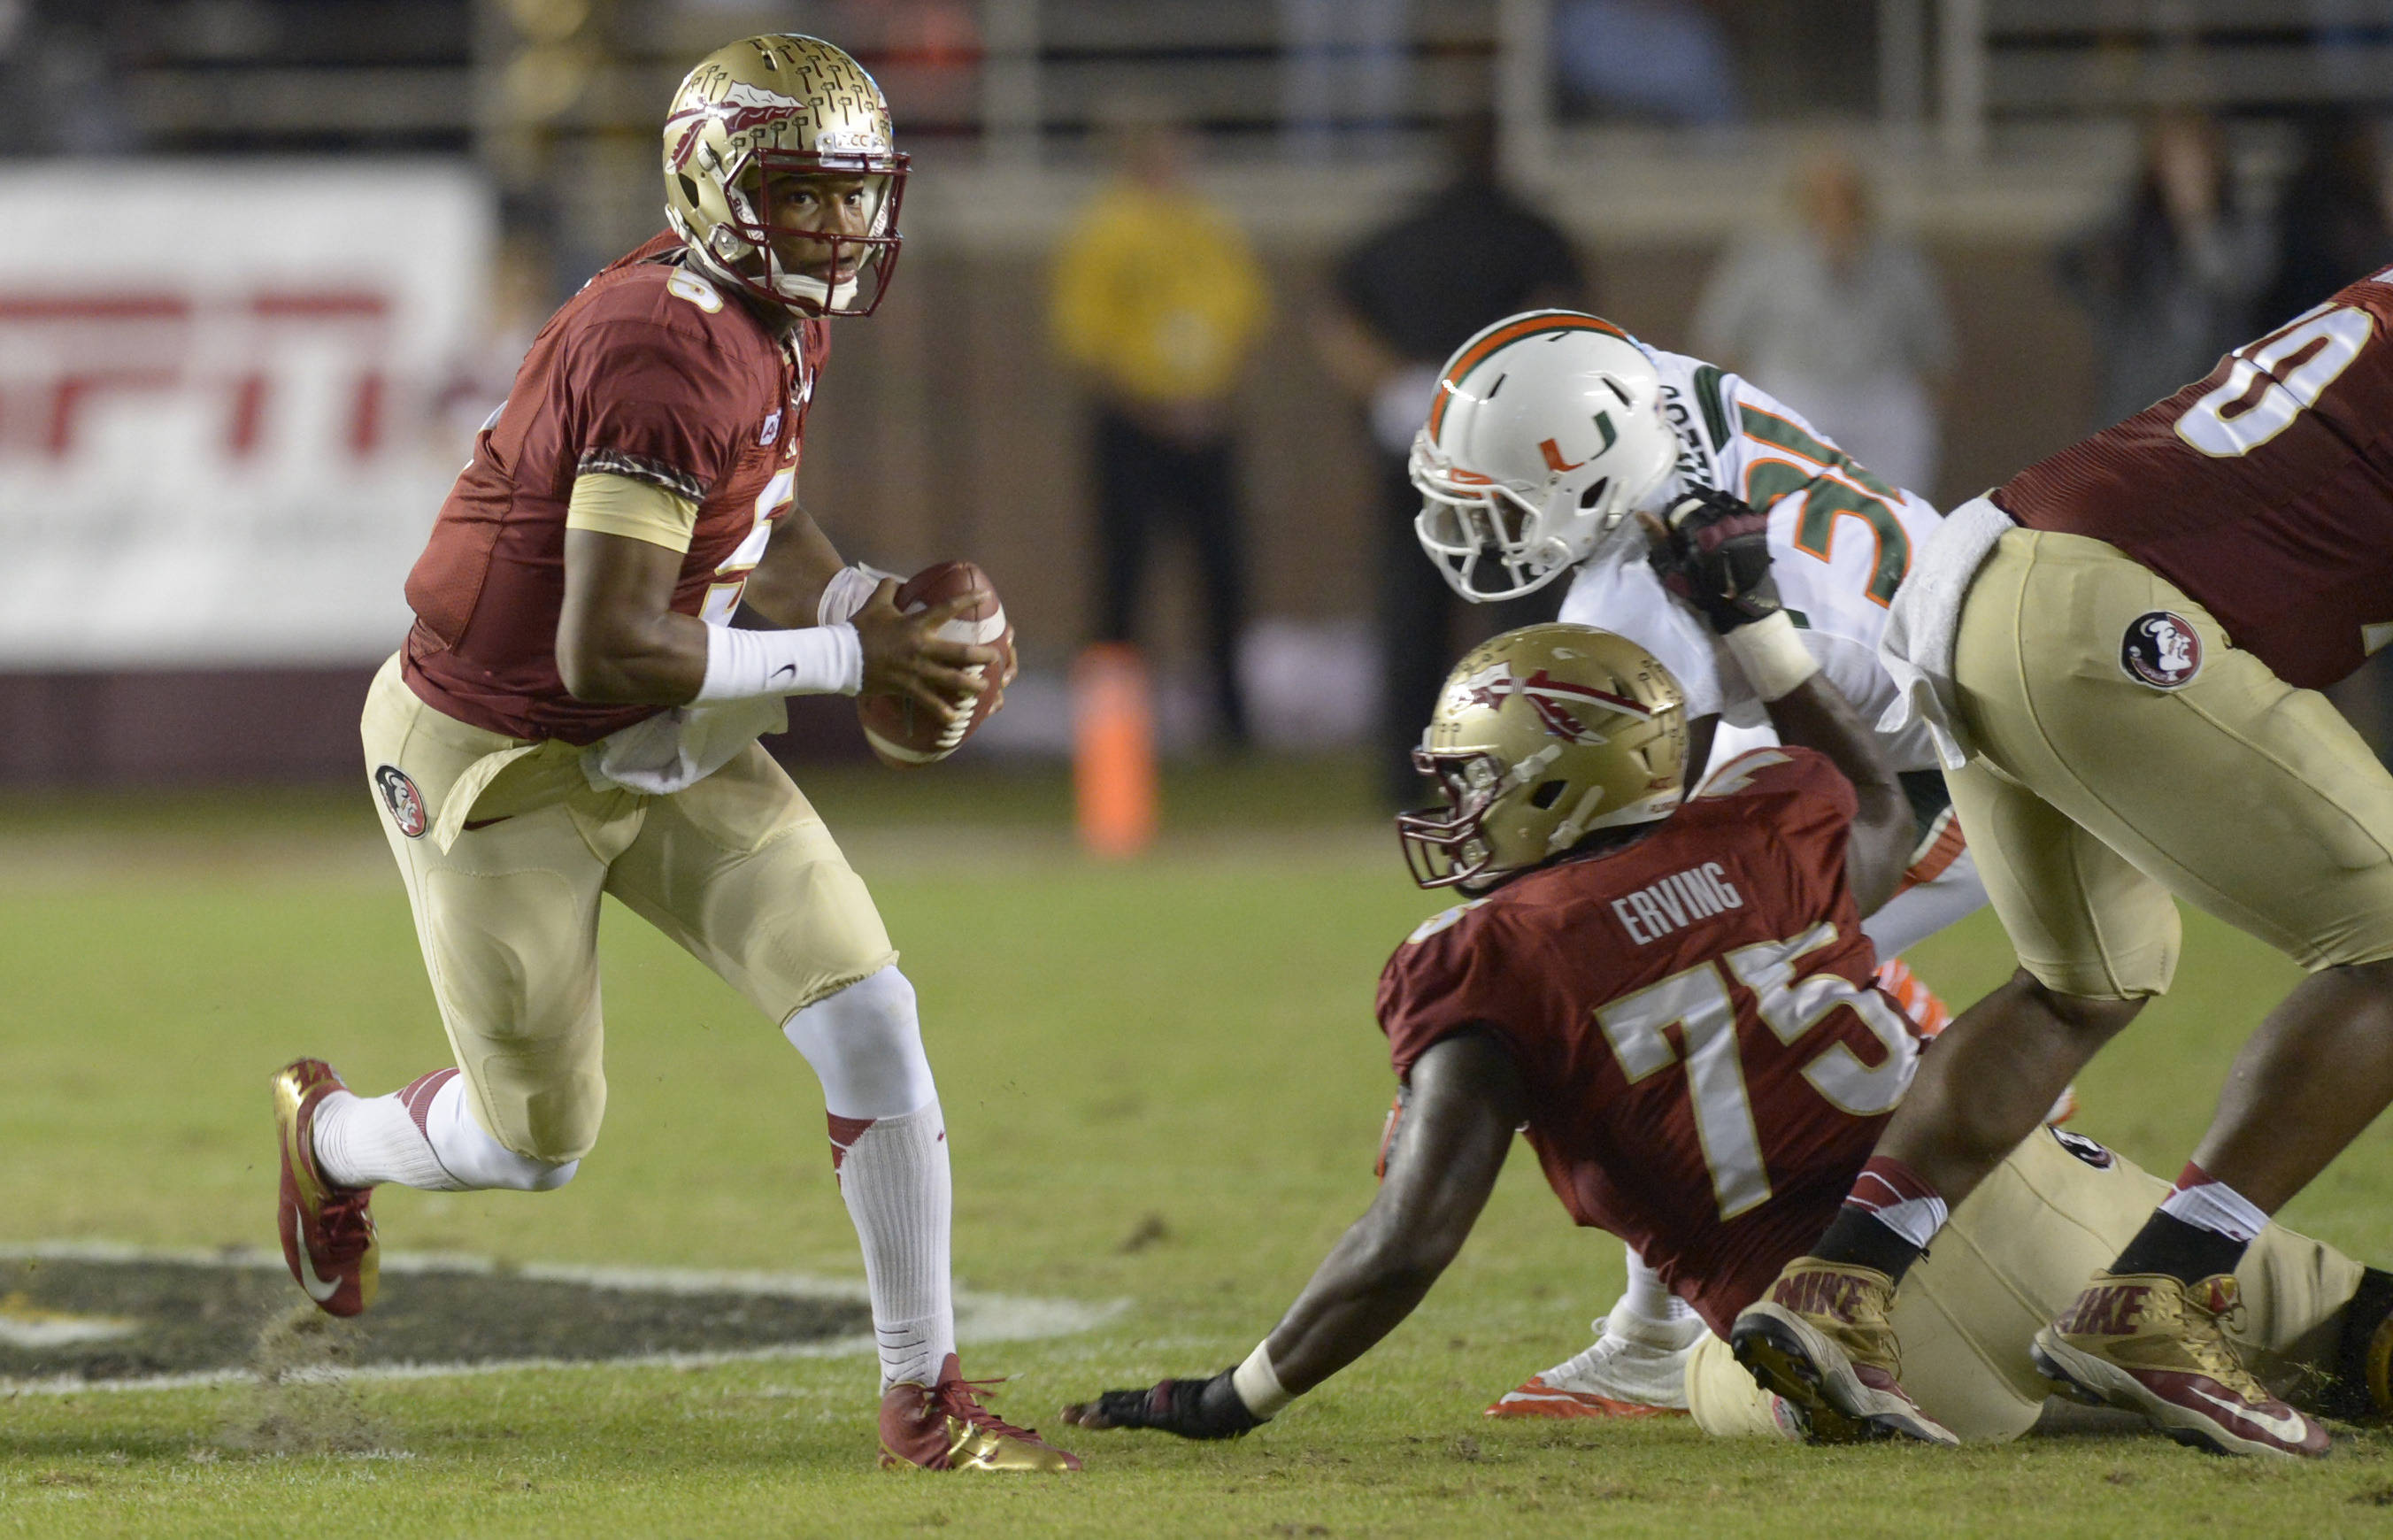 Florida State Seminoles quarterback Jameis Winston (5) scrambles out of the pocket against the Miami Hurricanes during the first quarter at Doak Campbell Stadium. Mandatory Credit: John David Mercer-USA TODAY Sports